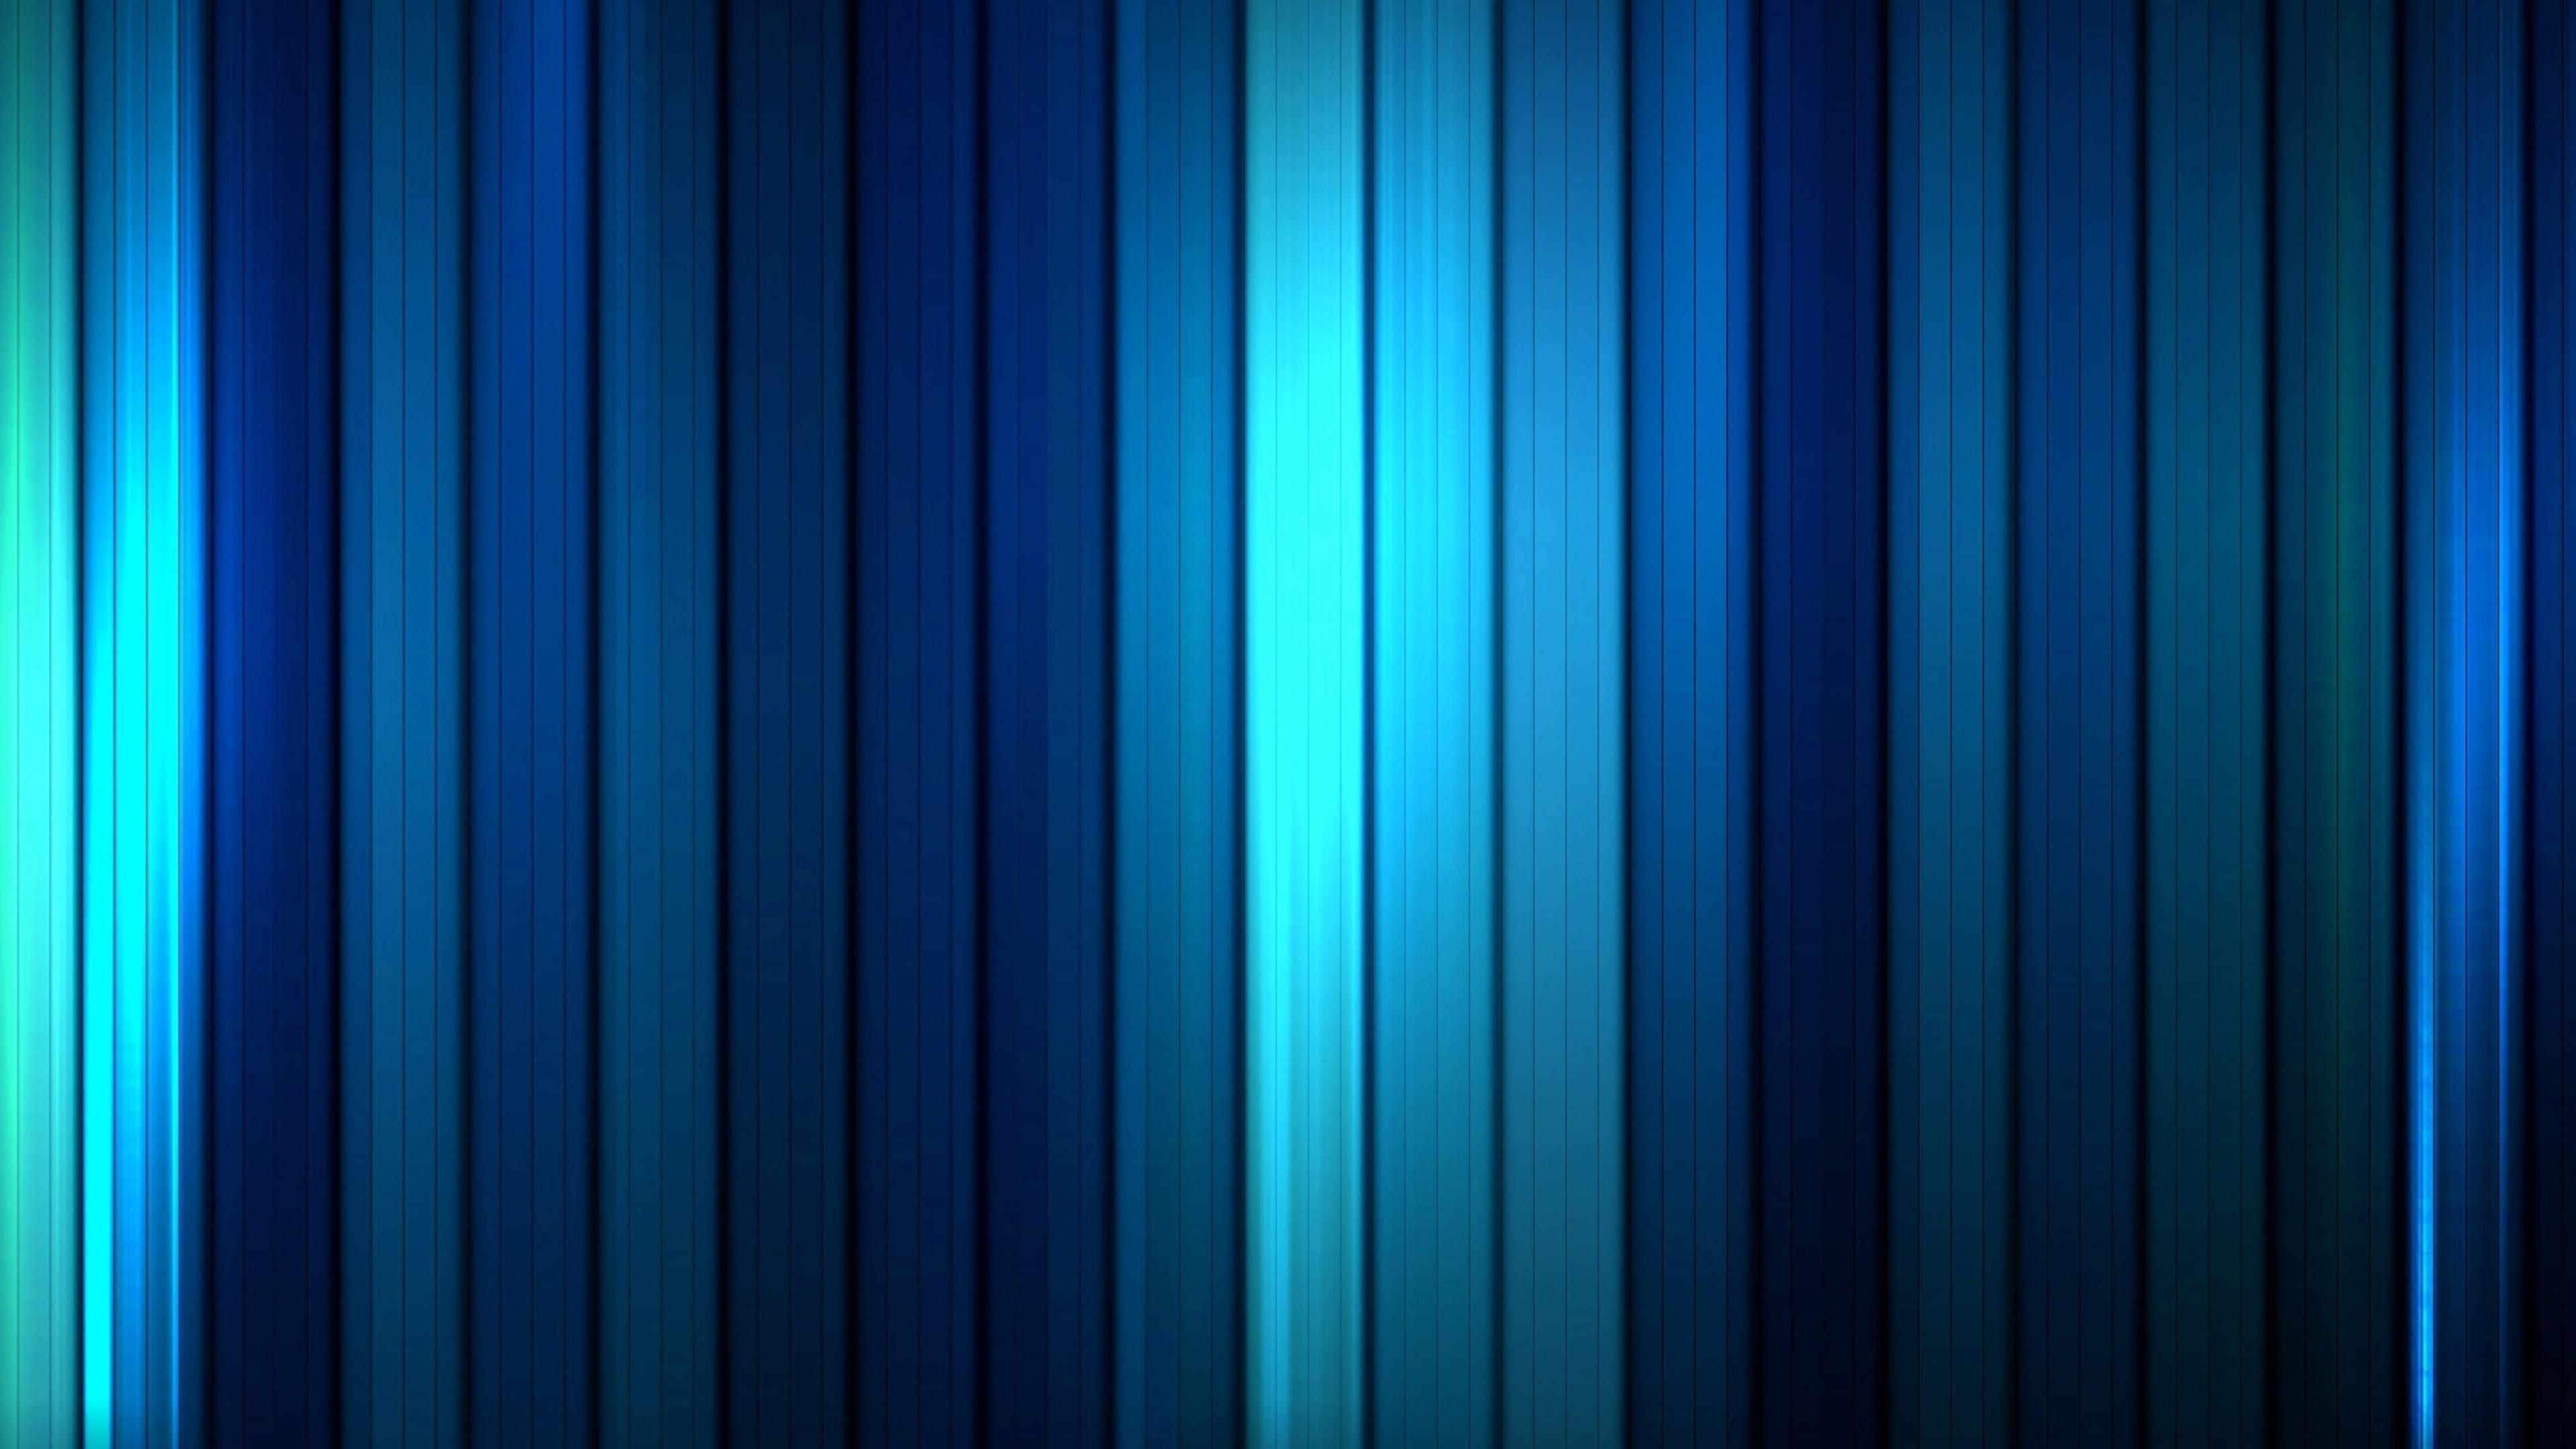 Different shades of blue abstract wallpaper wallpaper for Different shades of blue